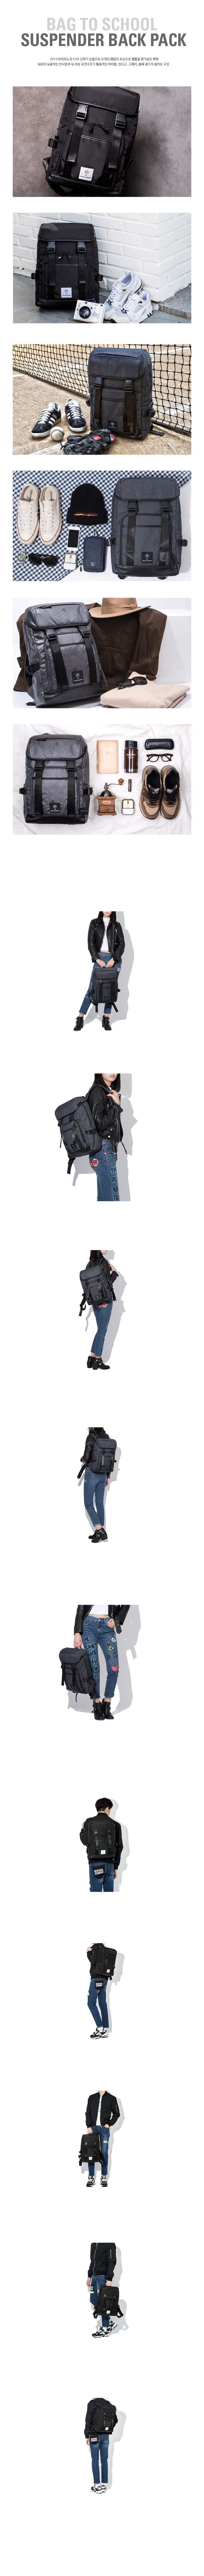 [ VIAMONOH ] BAG TO SCHOOL SUSPENDER BACKPACK (VAEF-2020)